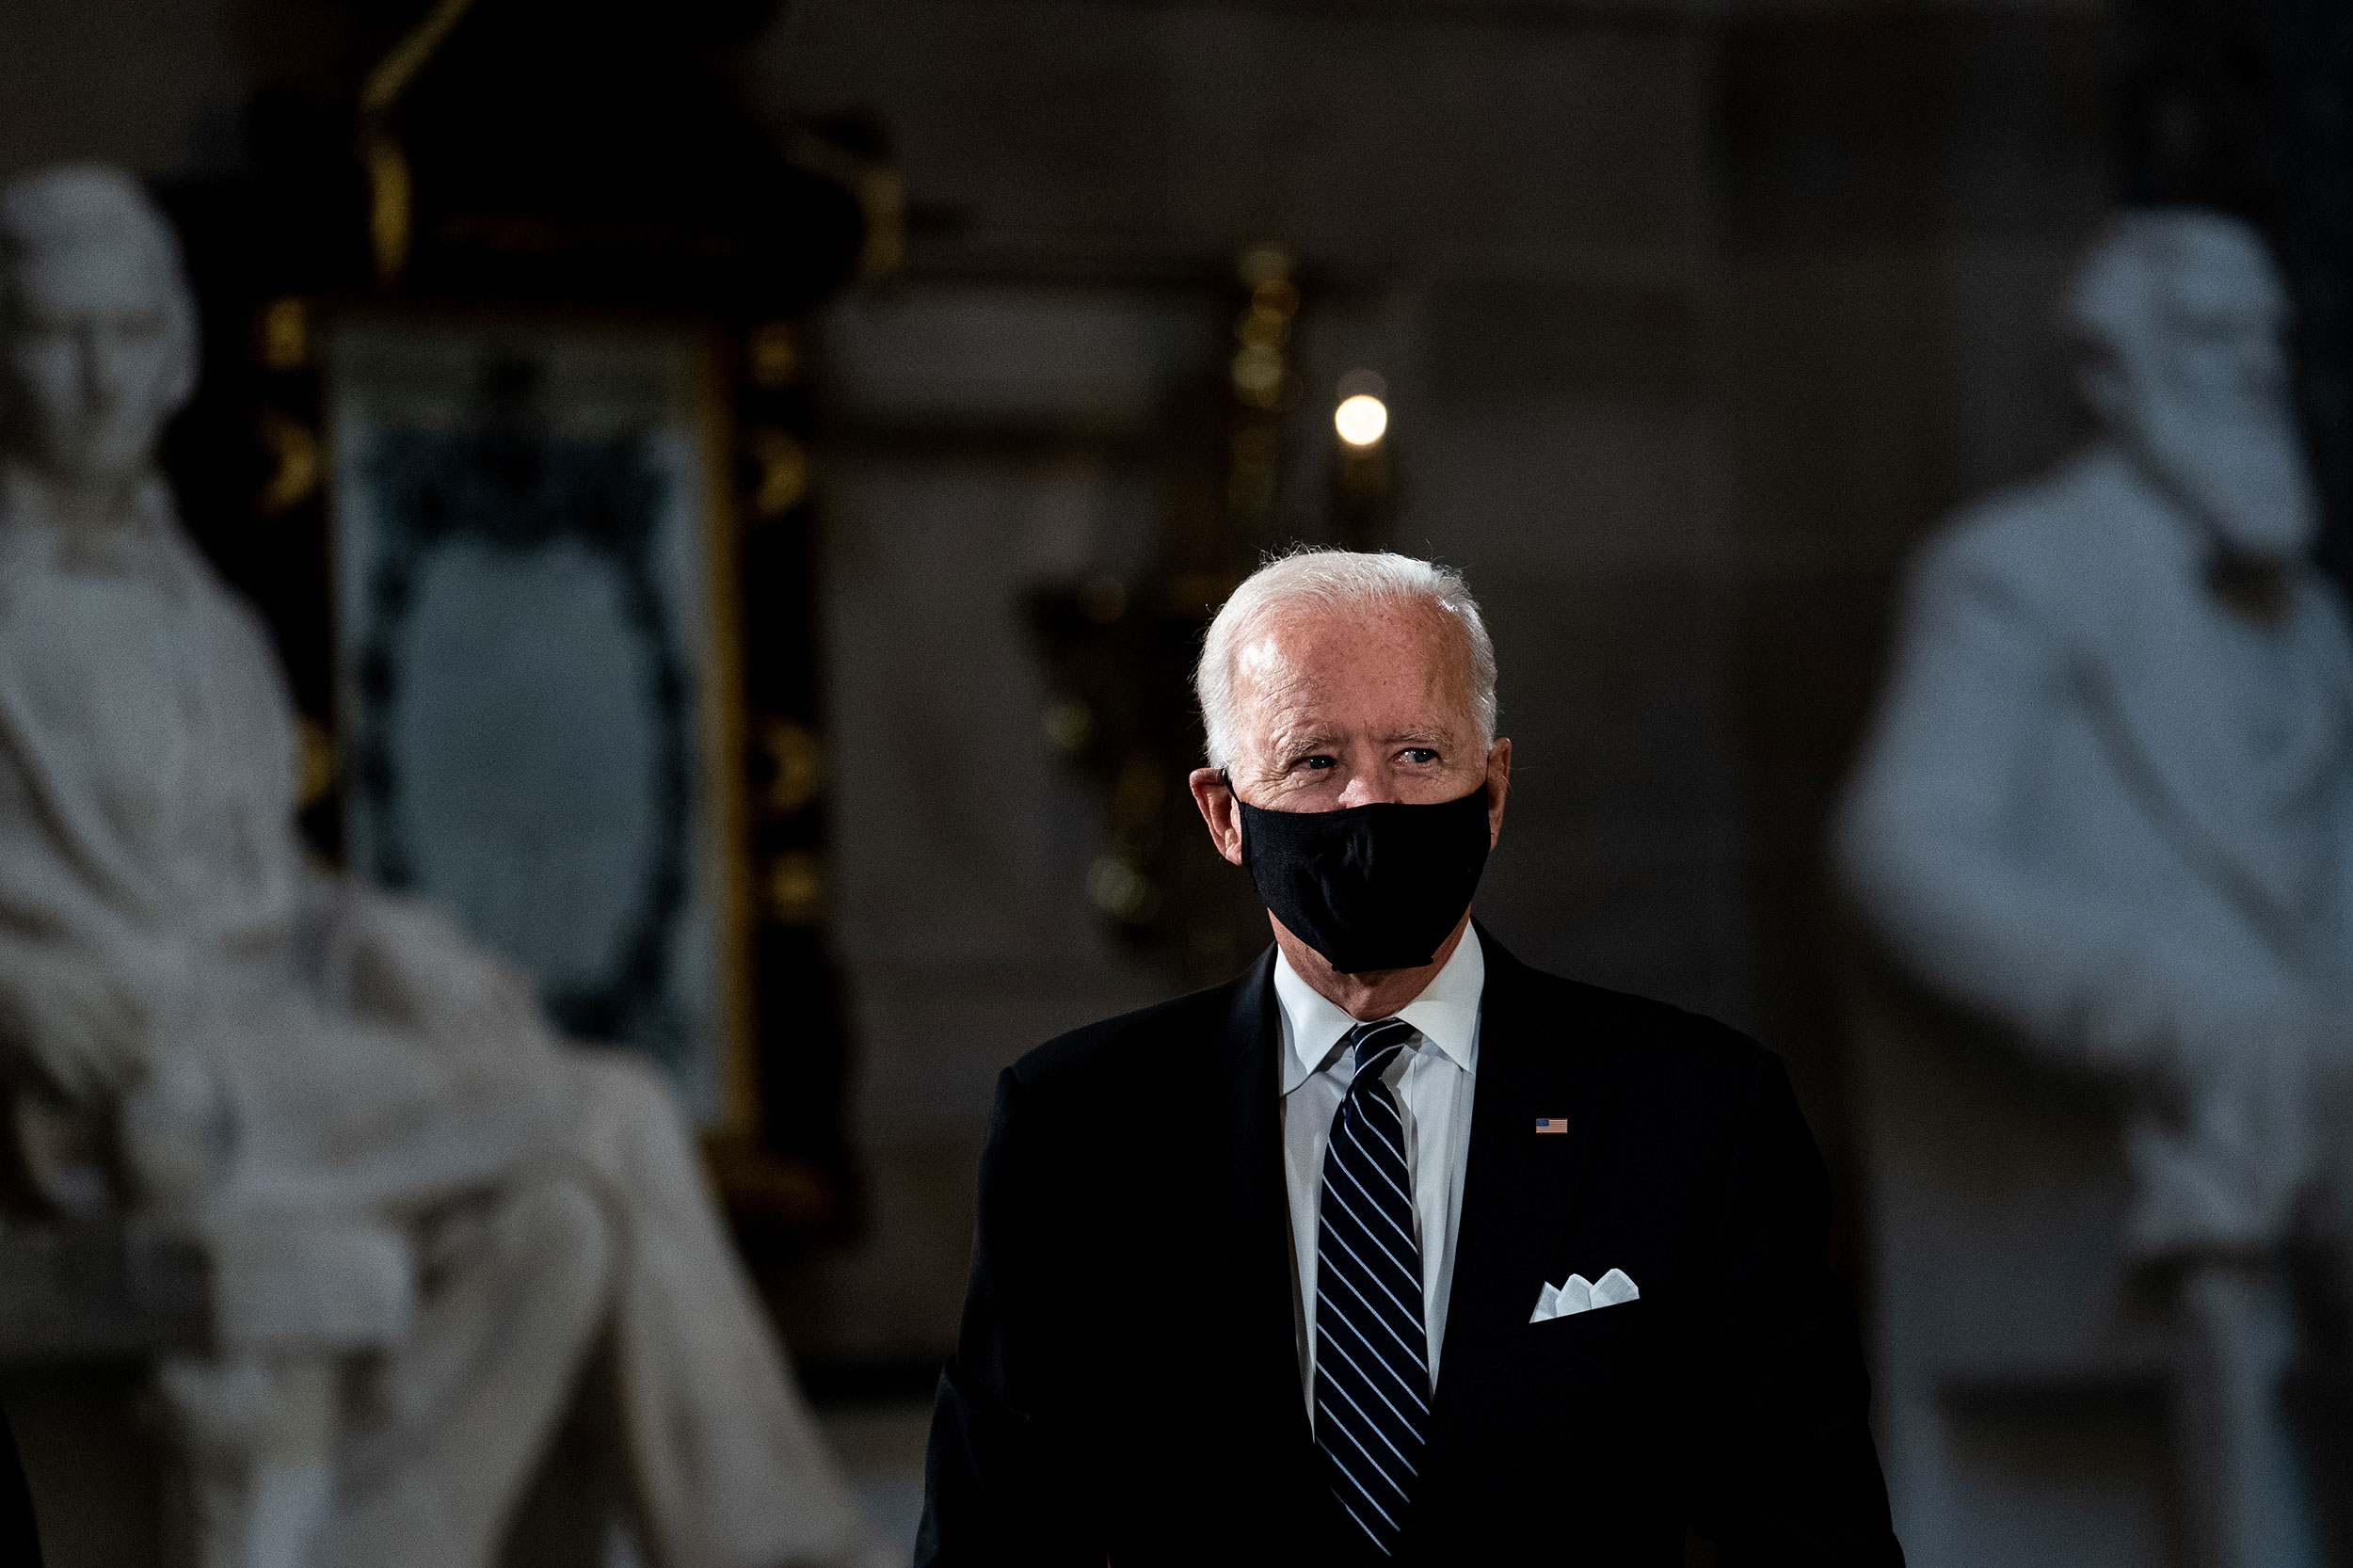 Joe Biden attends a memorial service for Ruth Bader Ginsburg in the Statuary Hall at the US Capitol on Friday, September 25.